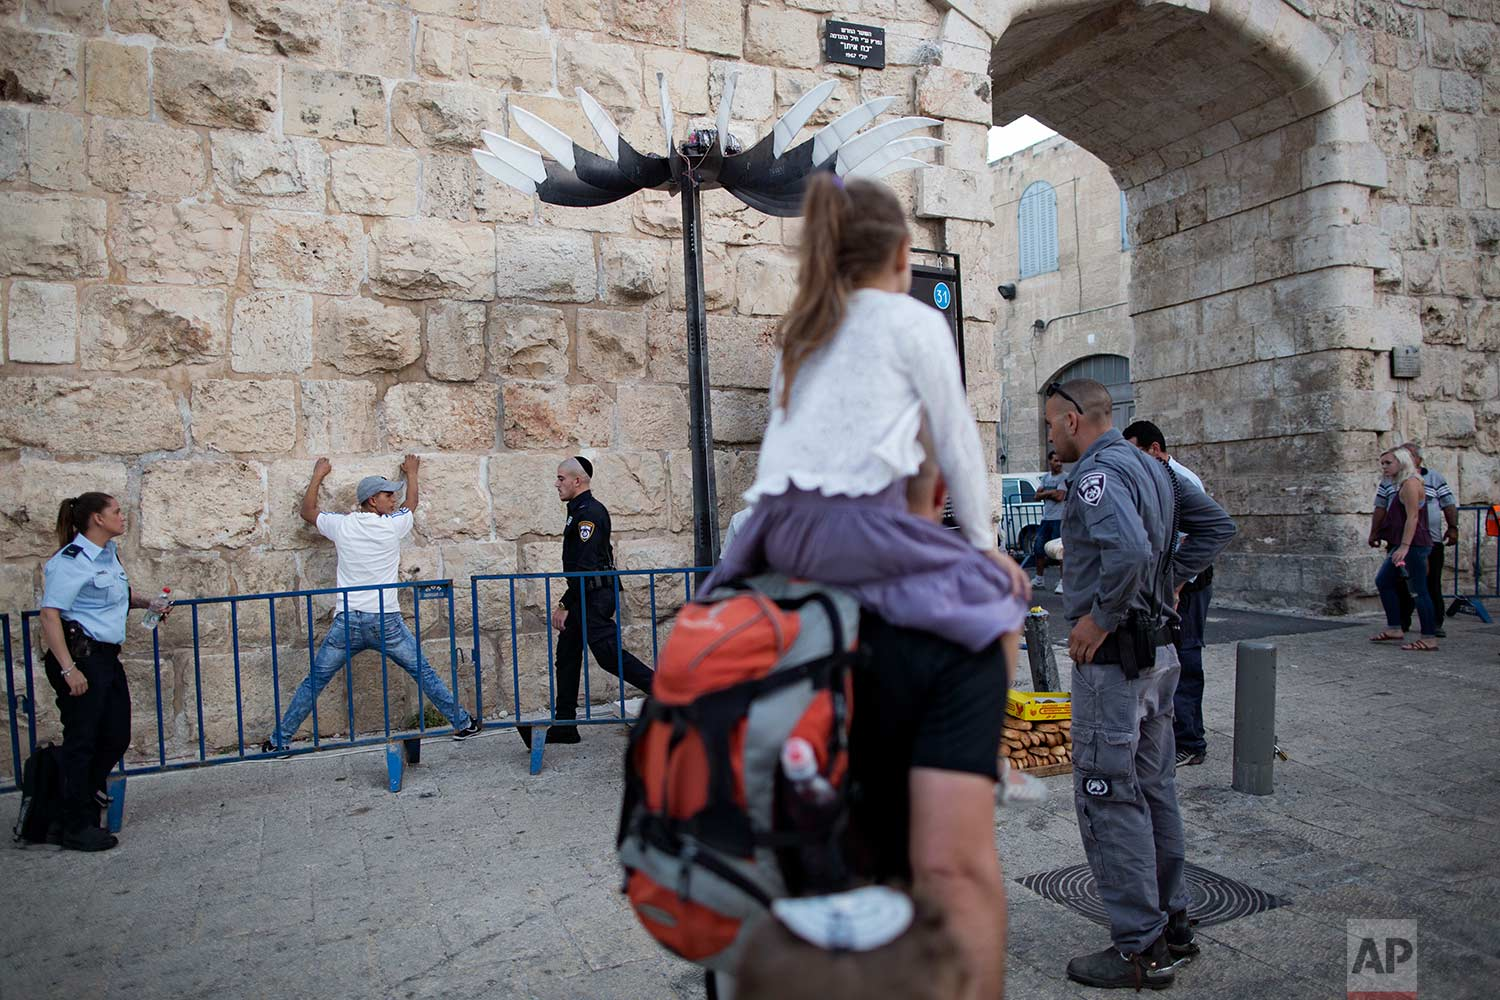 In this Thursday, July 6, 2017 photo, Israeli police officers search a Palestinian man next to the New Gate in Jerusalem Old City.  (AP Photo/Oded Balilty)